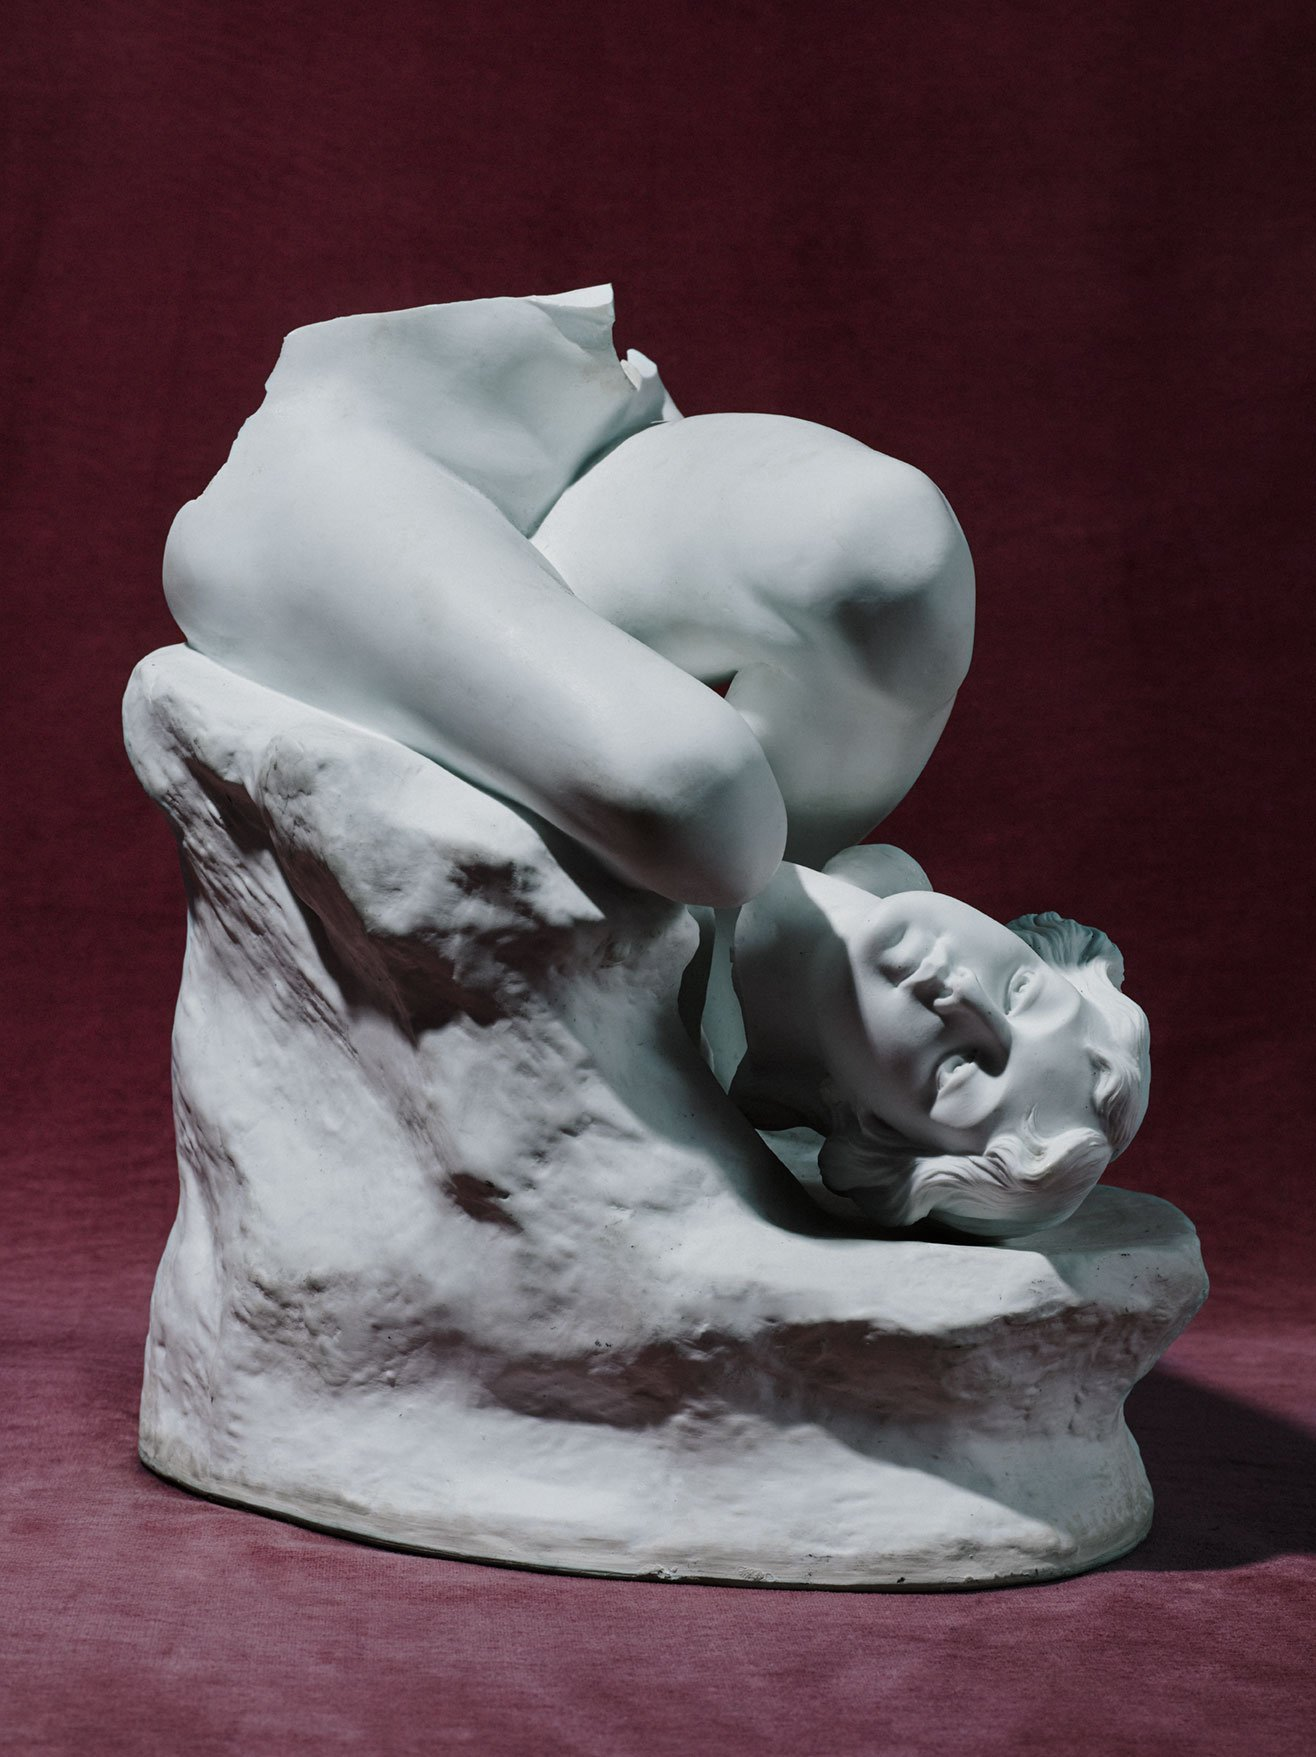 White sculpture of man, broken, for Romance Journal Issue 02. Publication design, art direction, print design by RoAndCo.